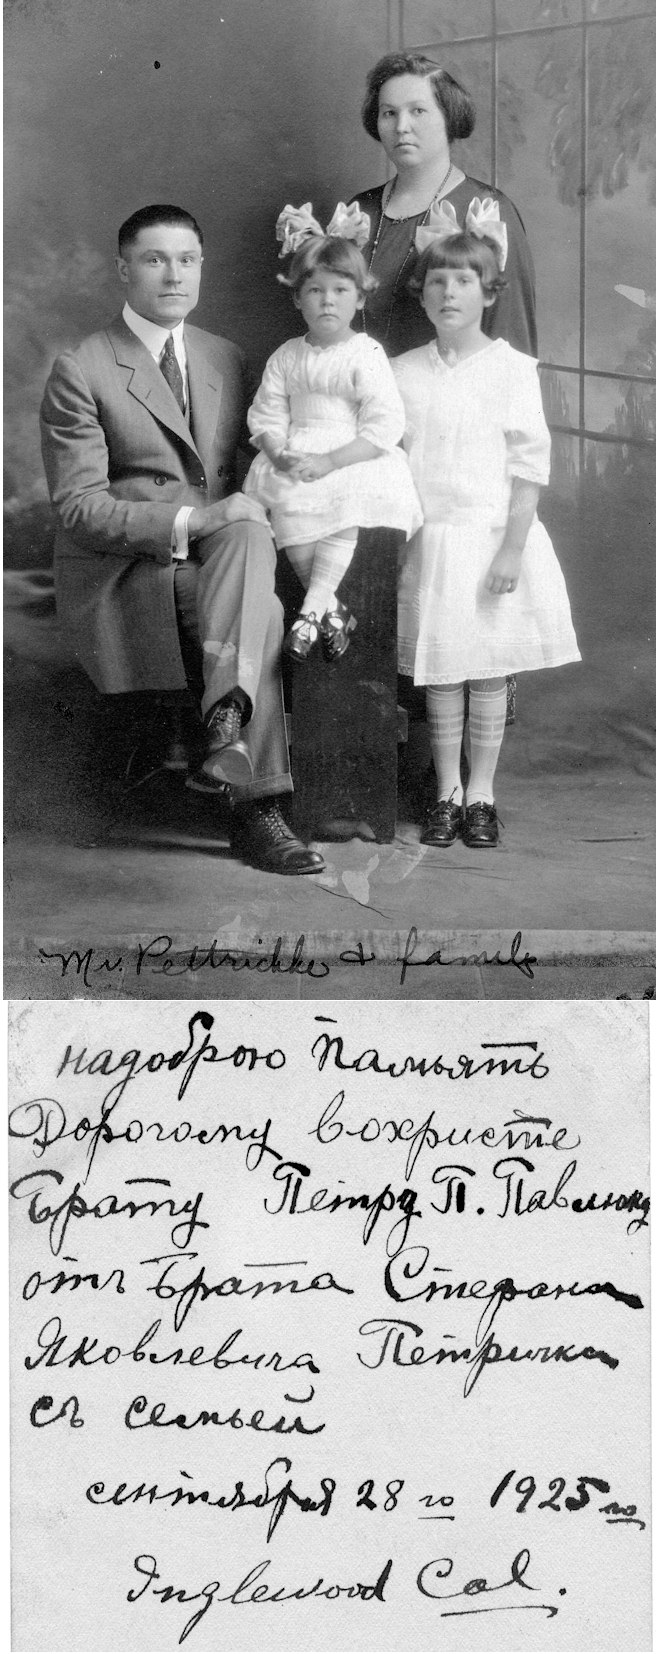 Mr. Pettrichko and Family